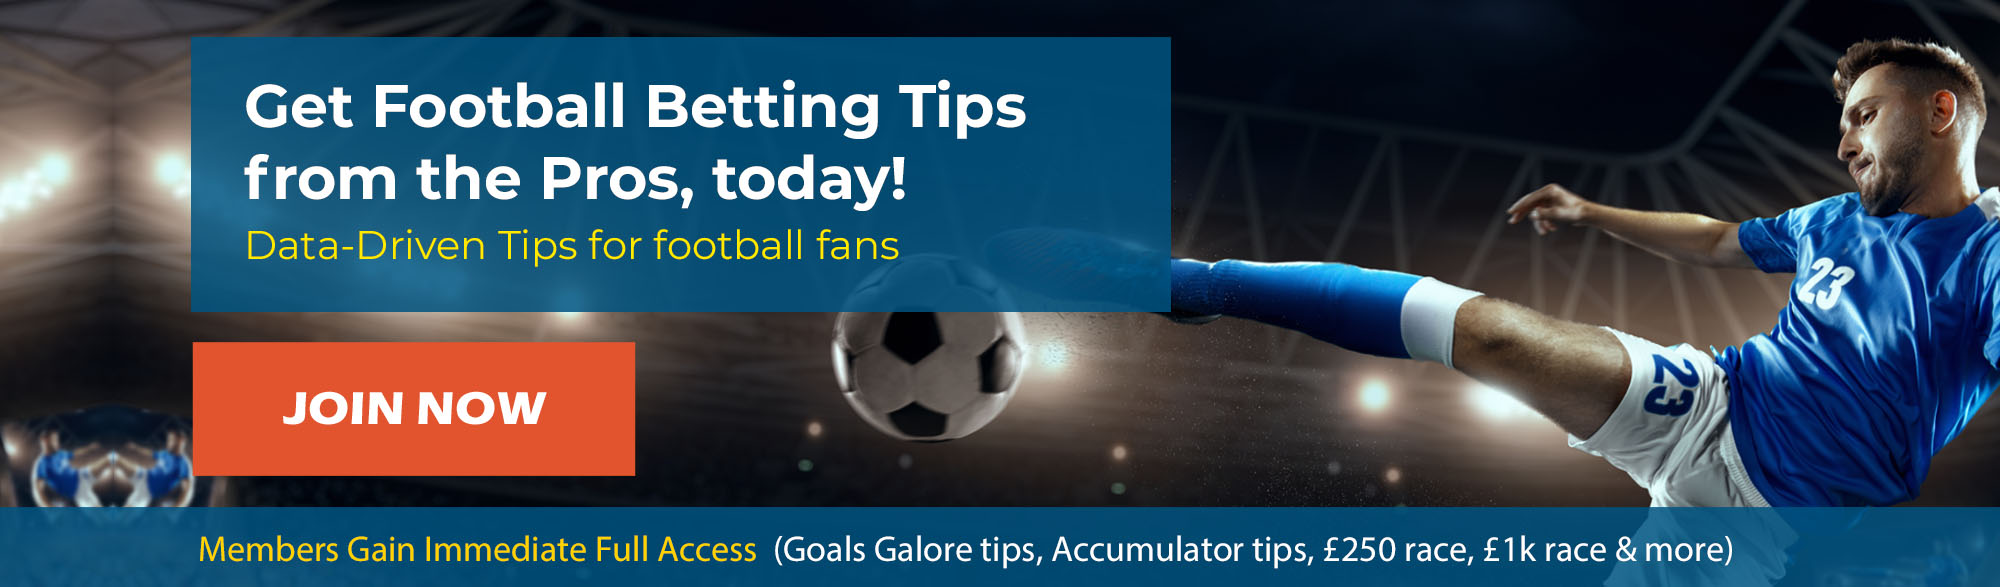 Football bettings tips from experts